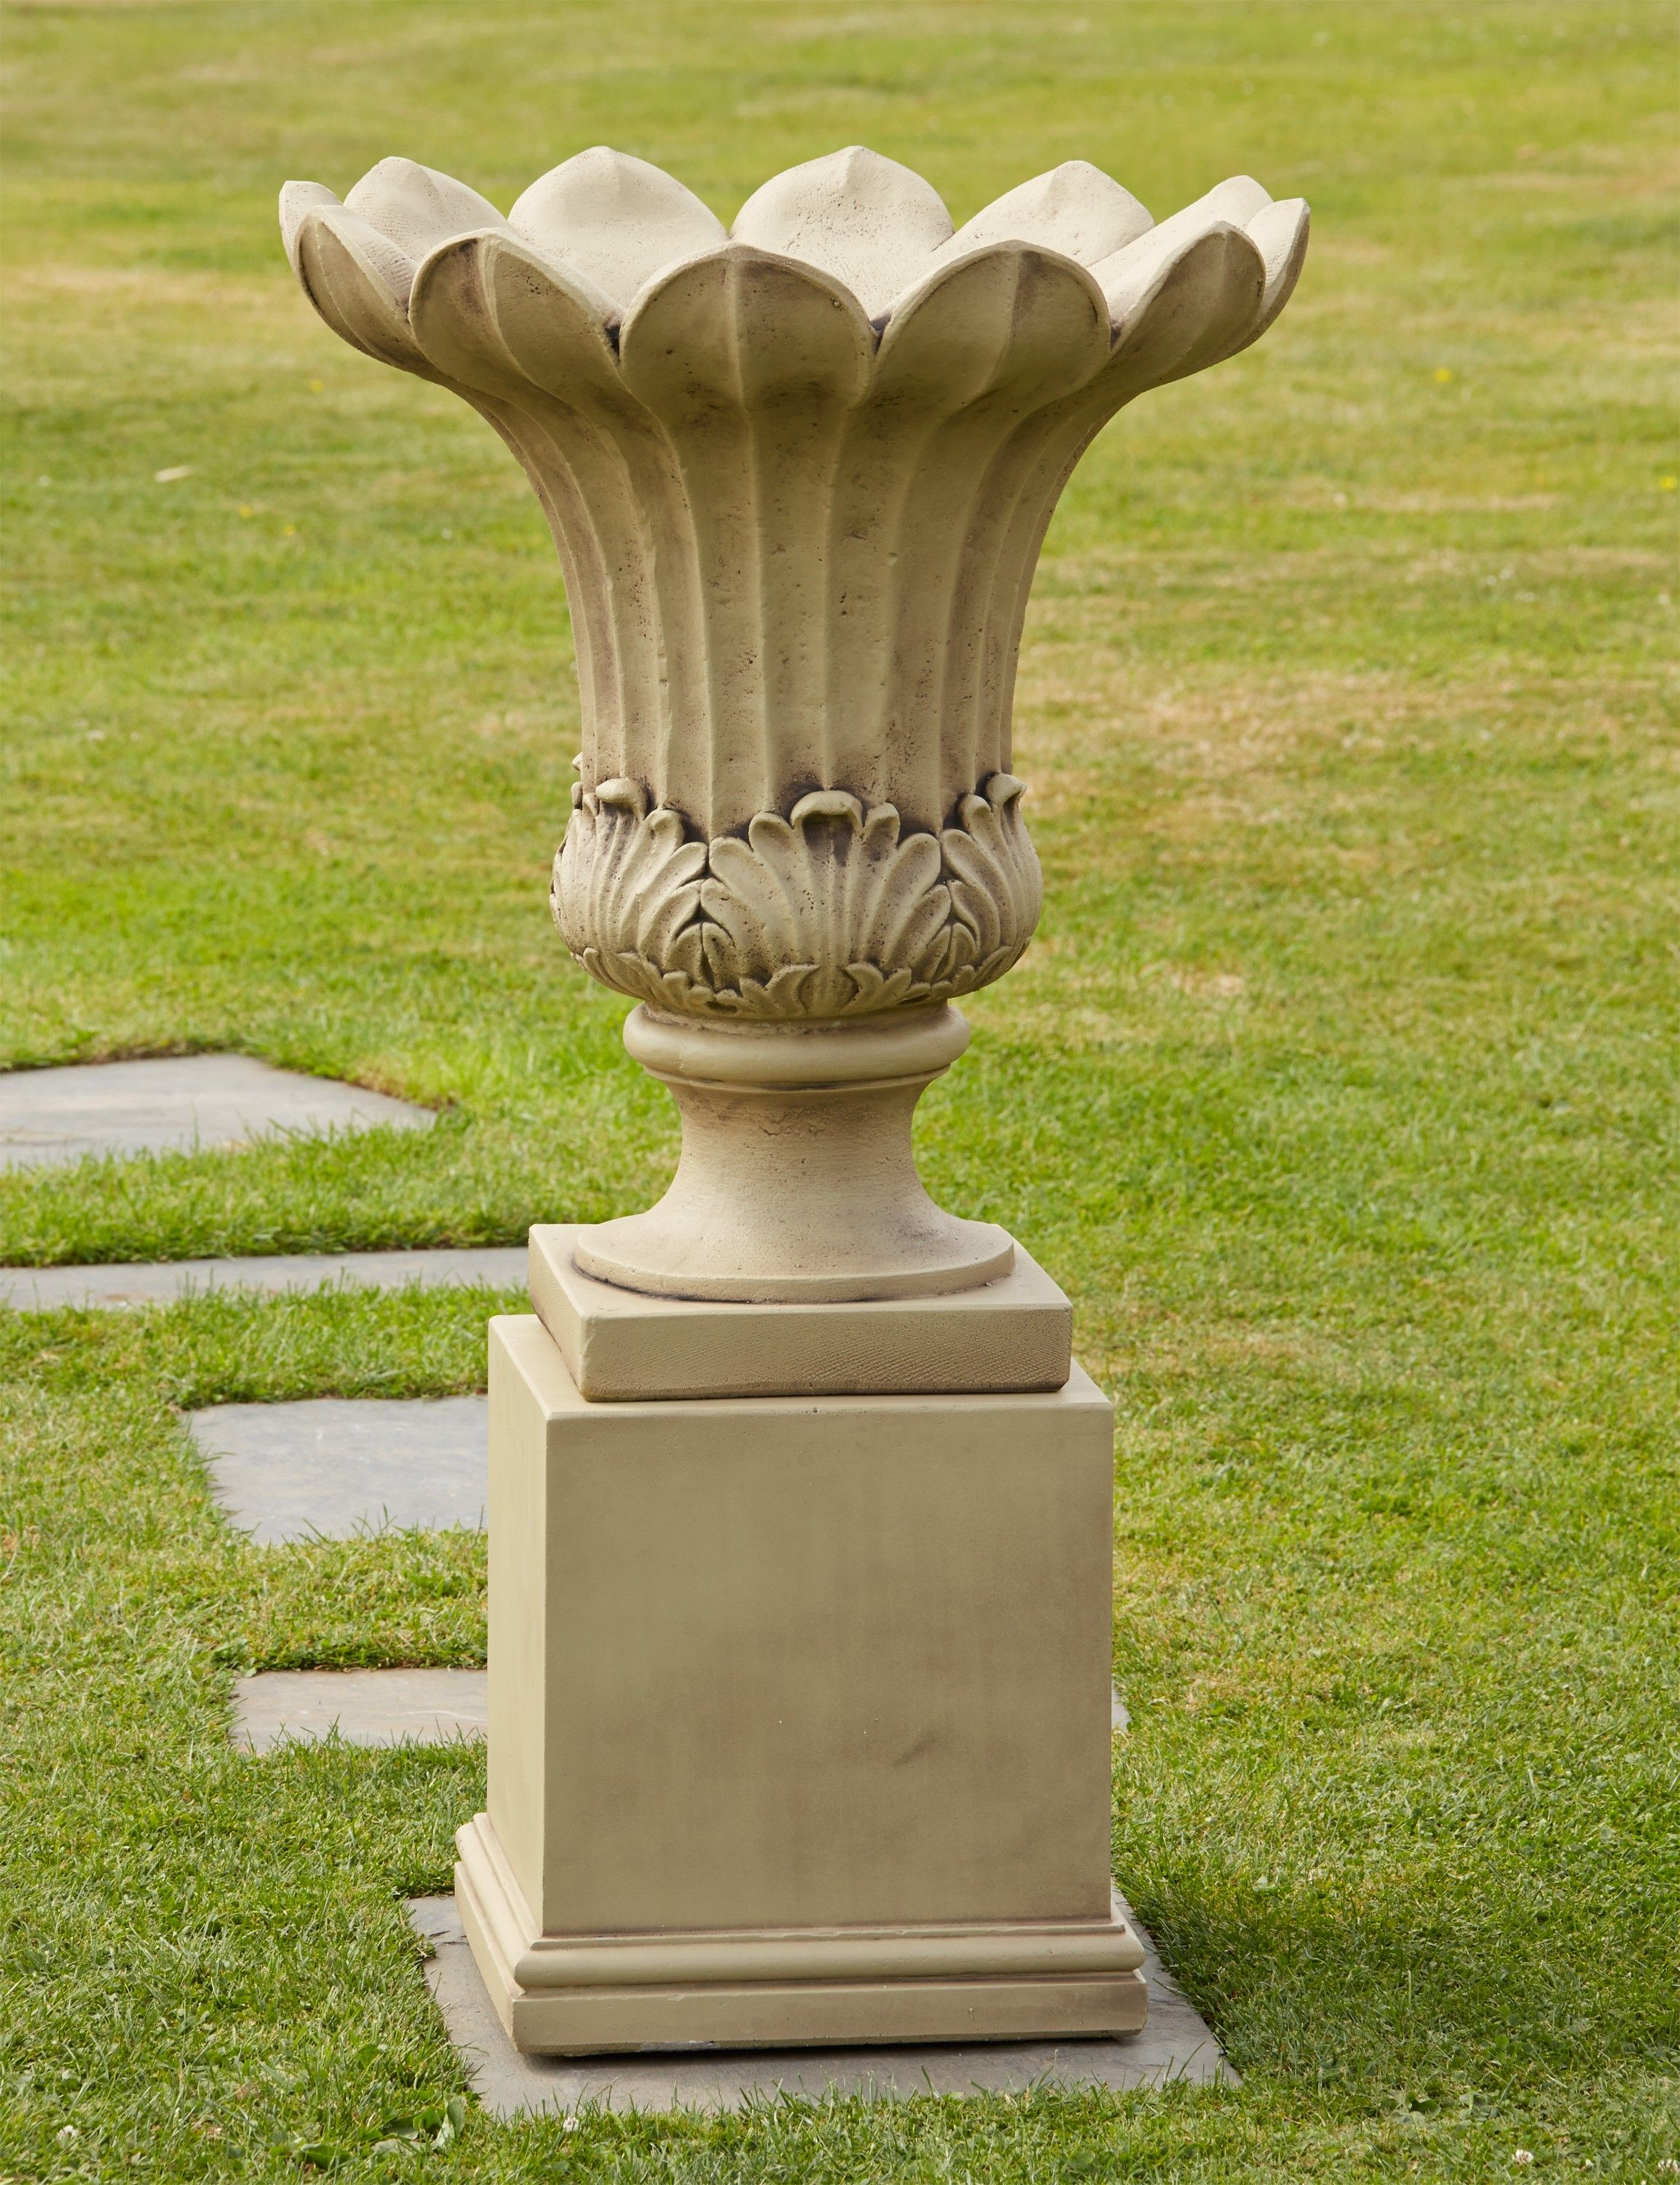 Annecy Stone Vase On Pedestal Large Garden Planter. Buy Now At Http://